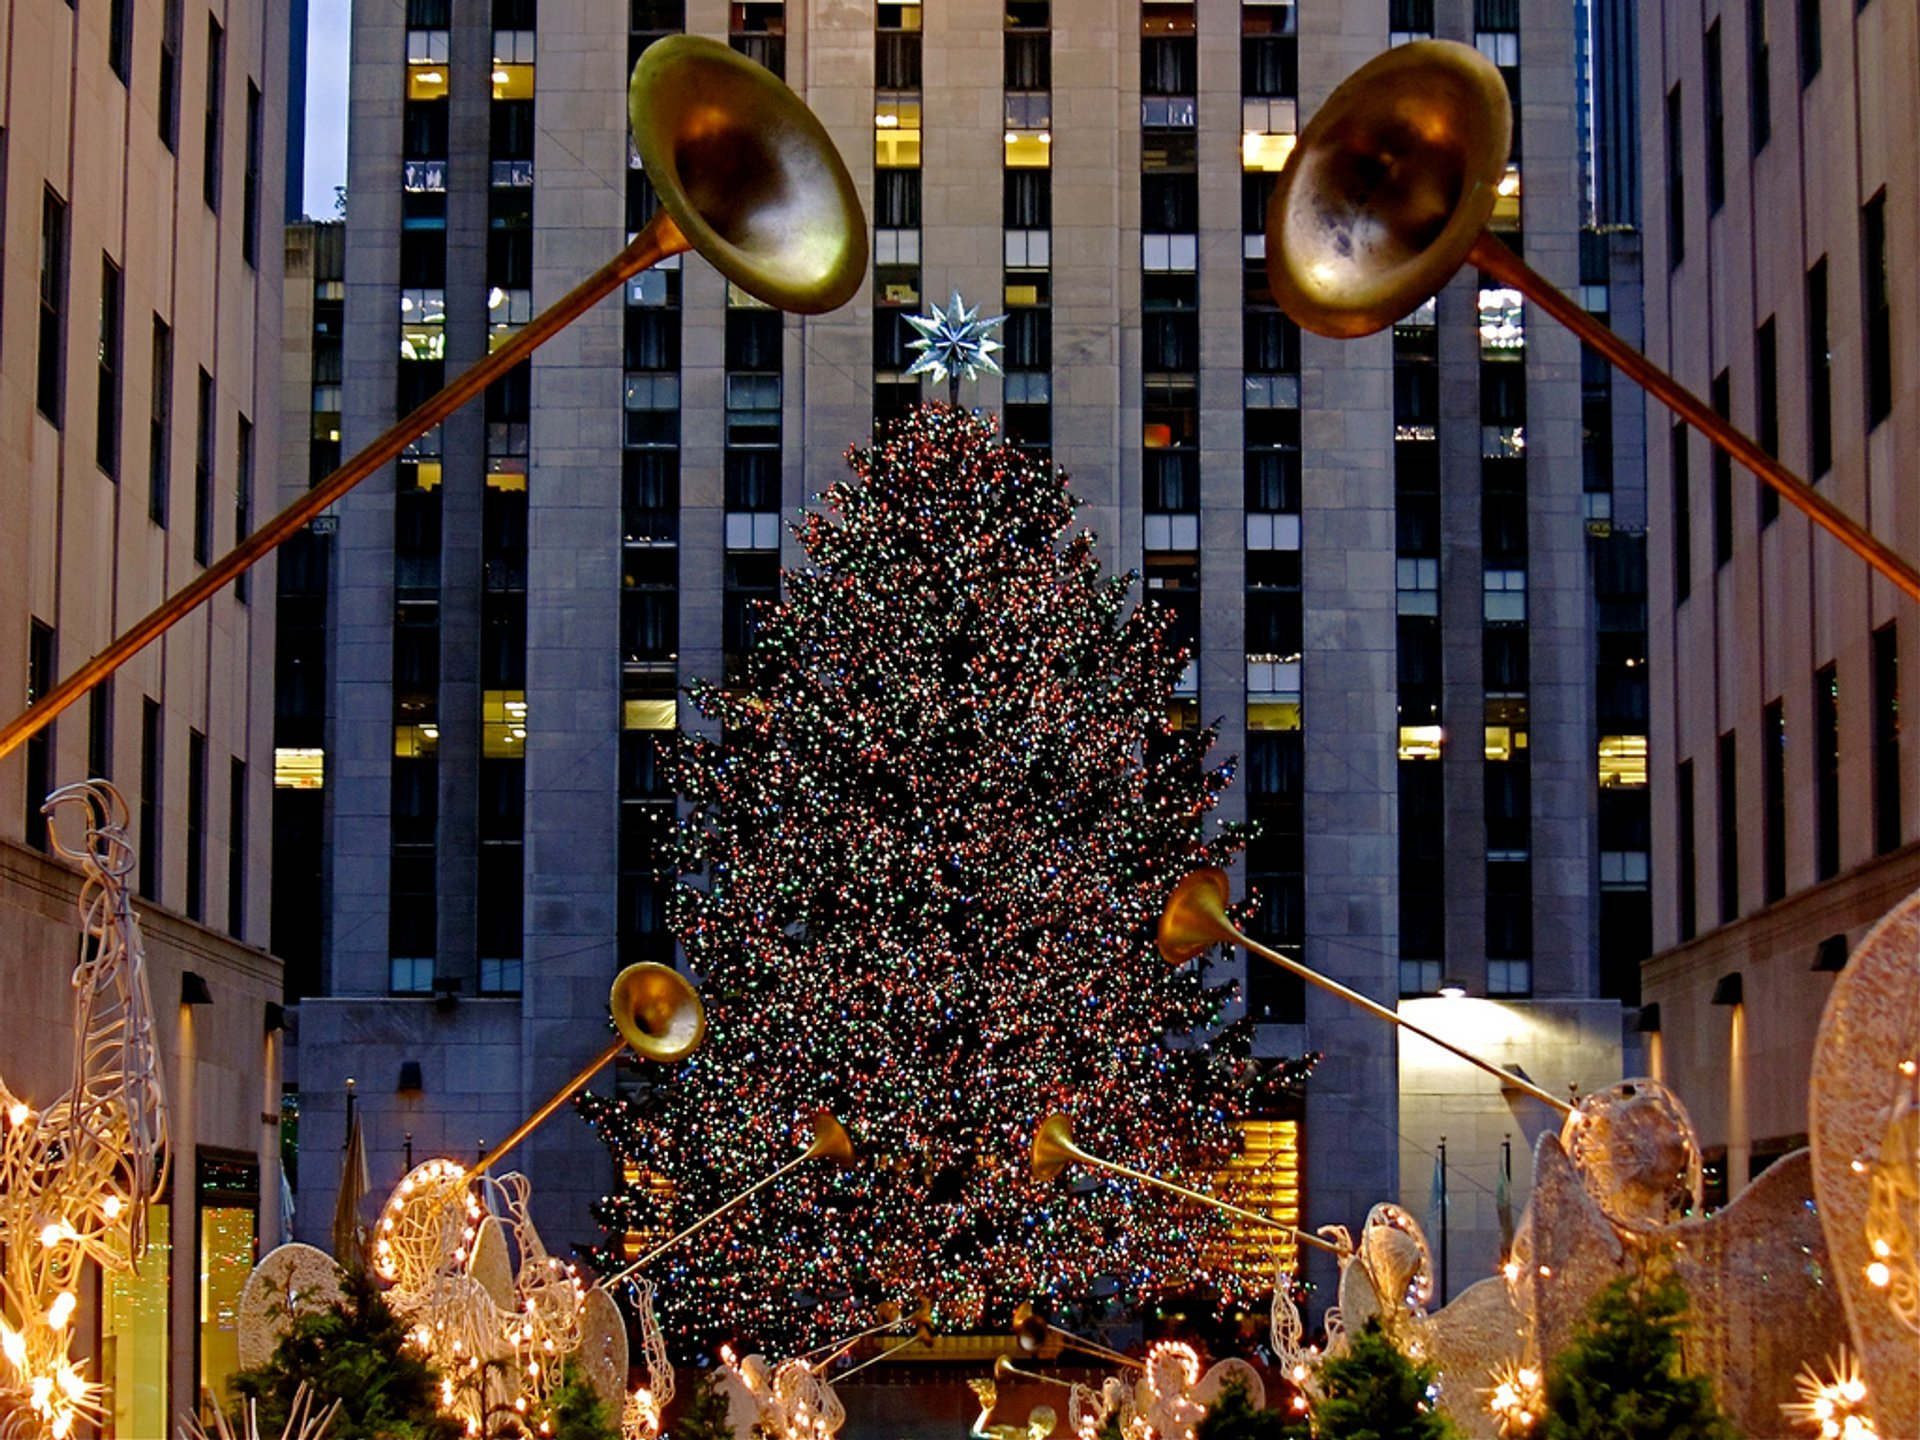 Rockefeller Plaza Christmas Tree 2020 Rockefeller Center Christmas Tree 2020 2021 in New York   Dates